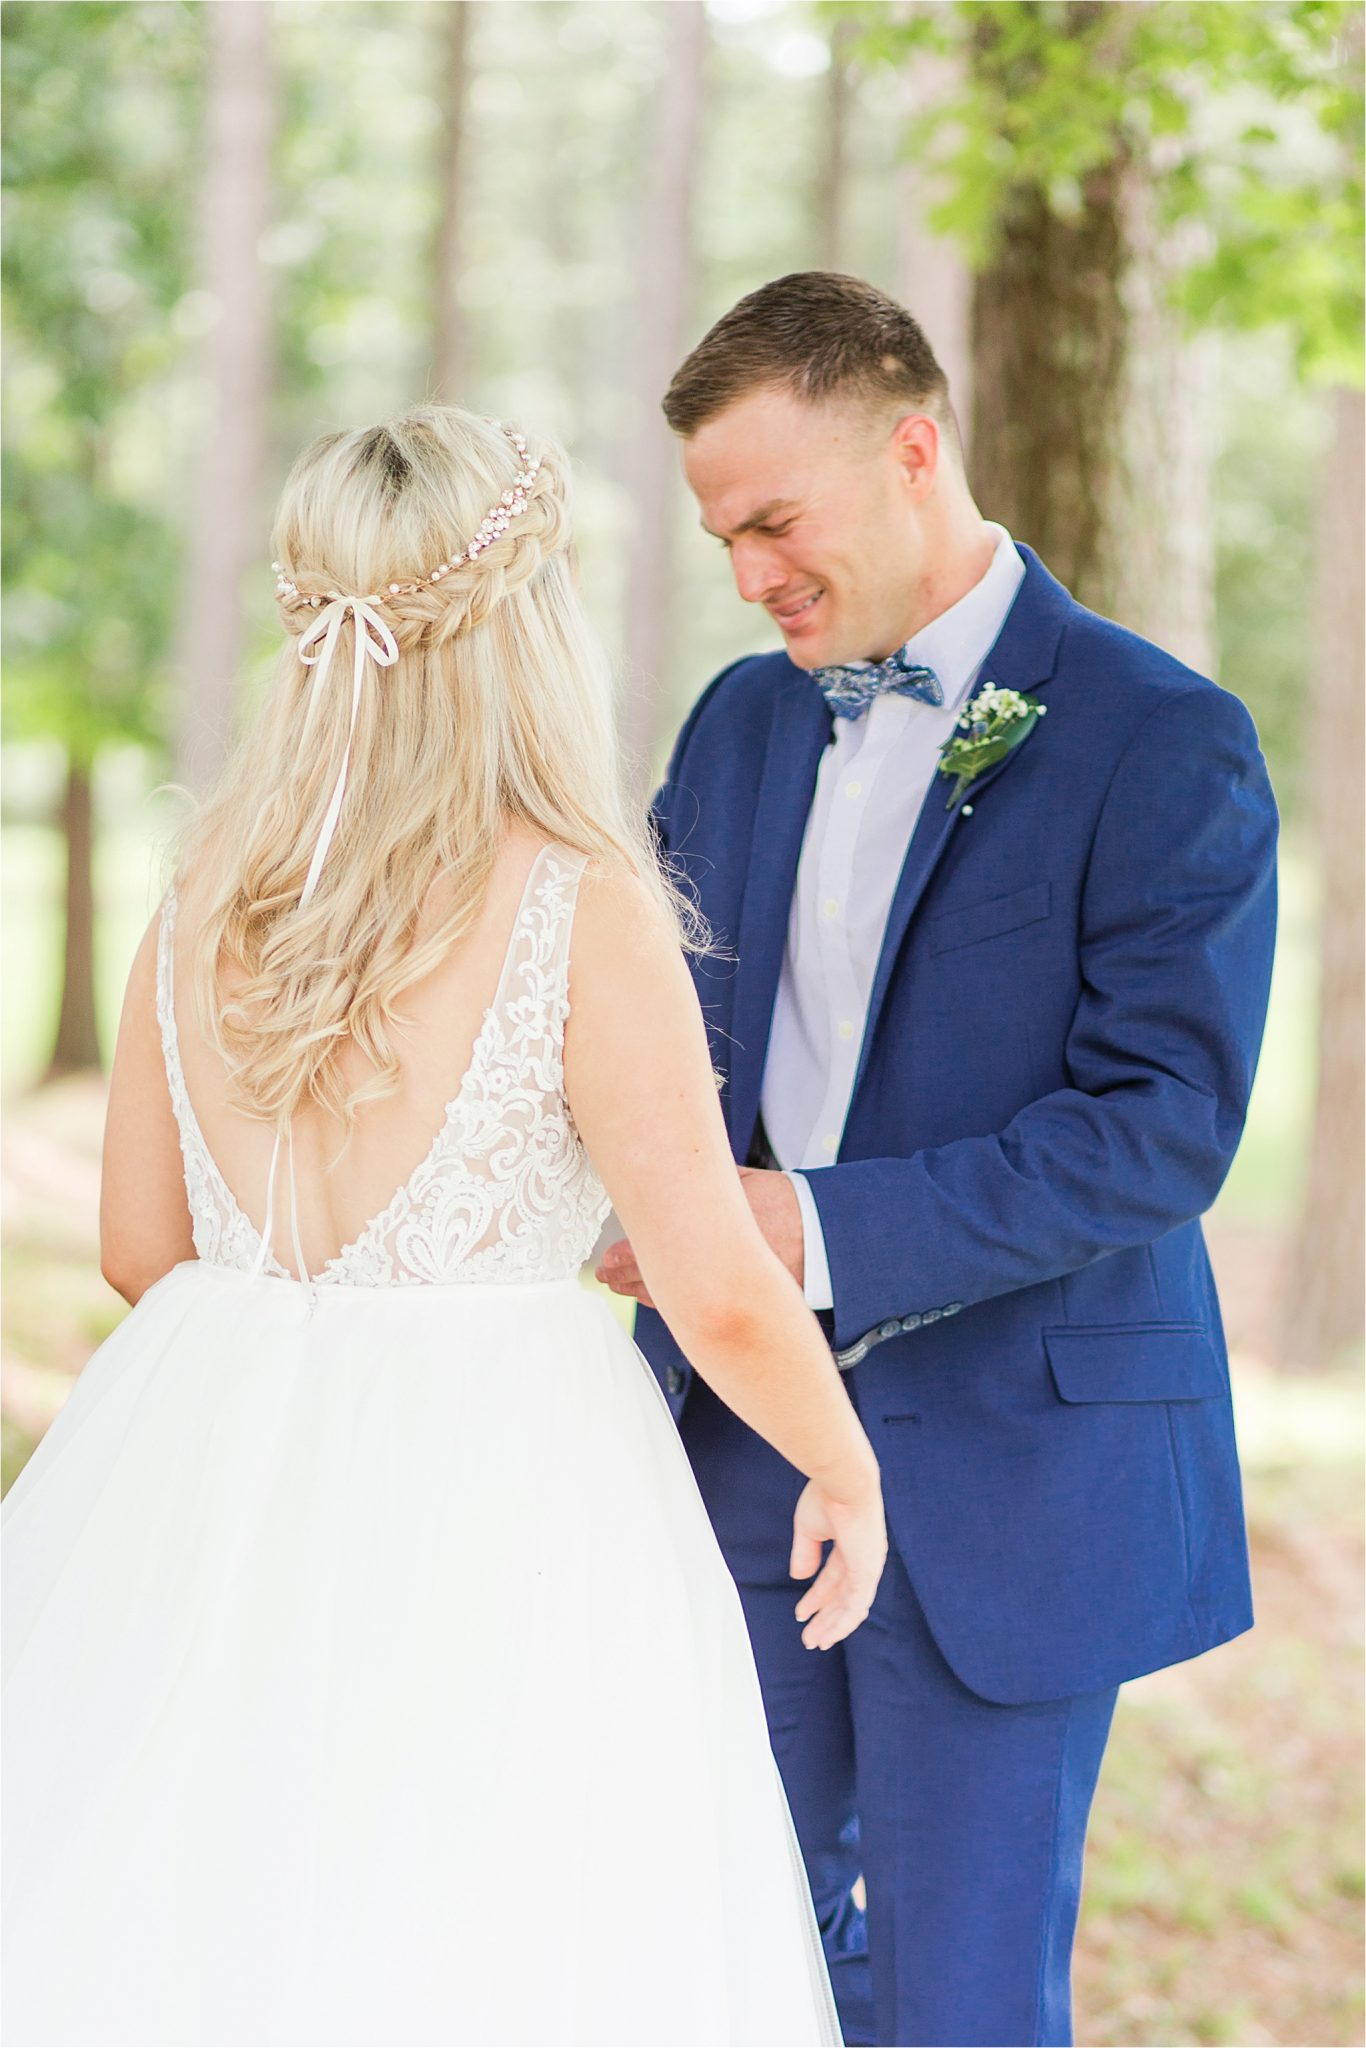 blue-suit-groom-bride-bow-tie-first-look